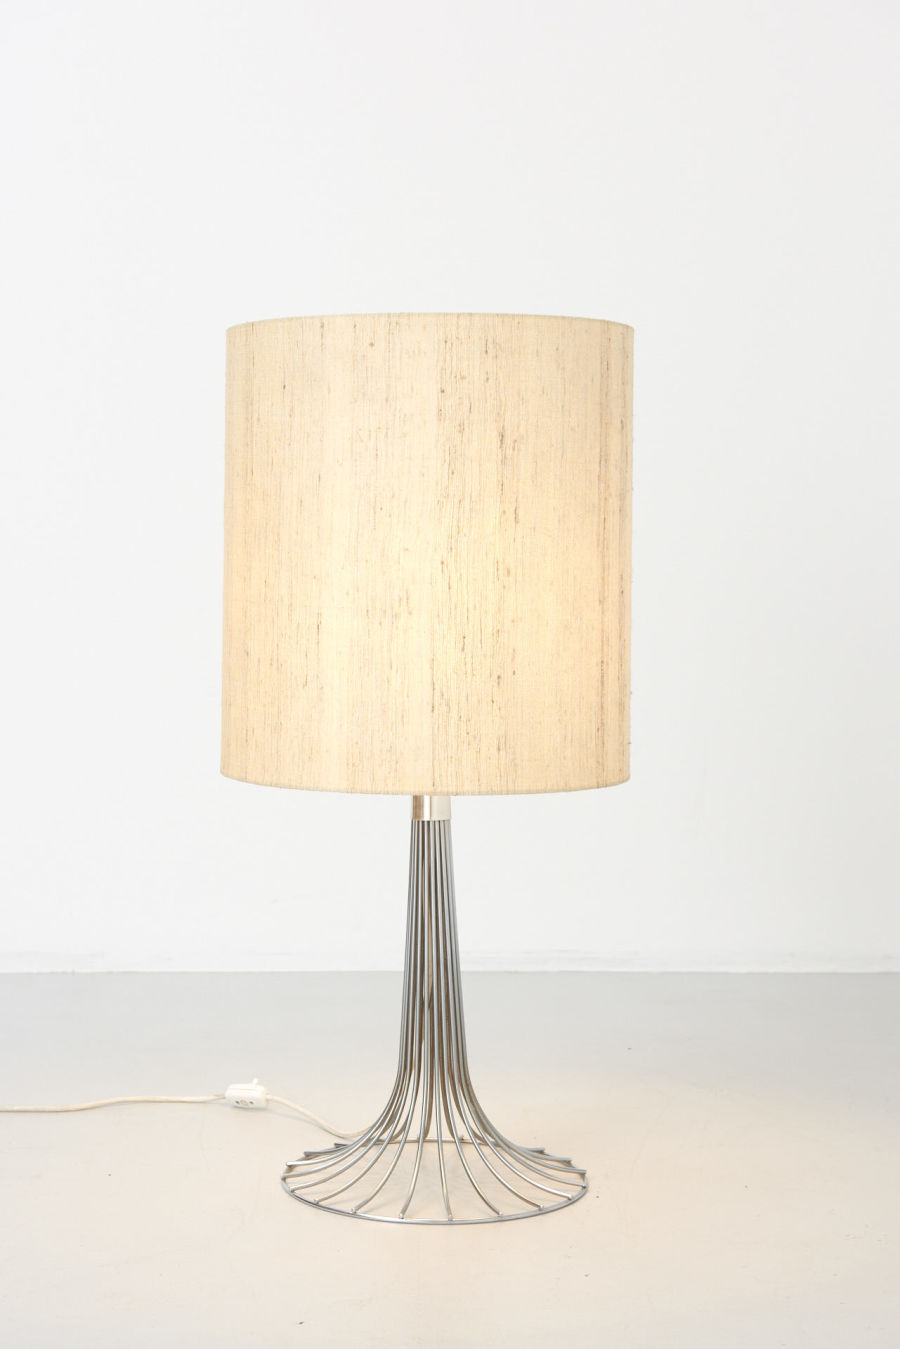 modestfurniture-vintage-2170-wire-table-lamp-verner-panton-fritz-hansen01